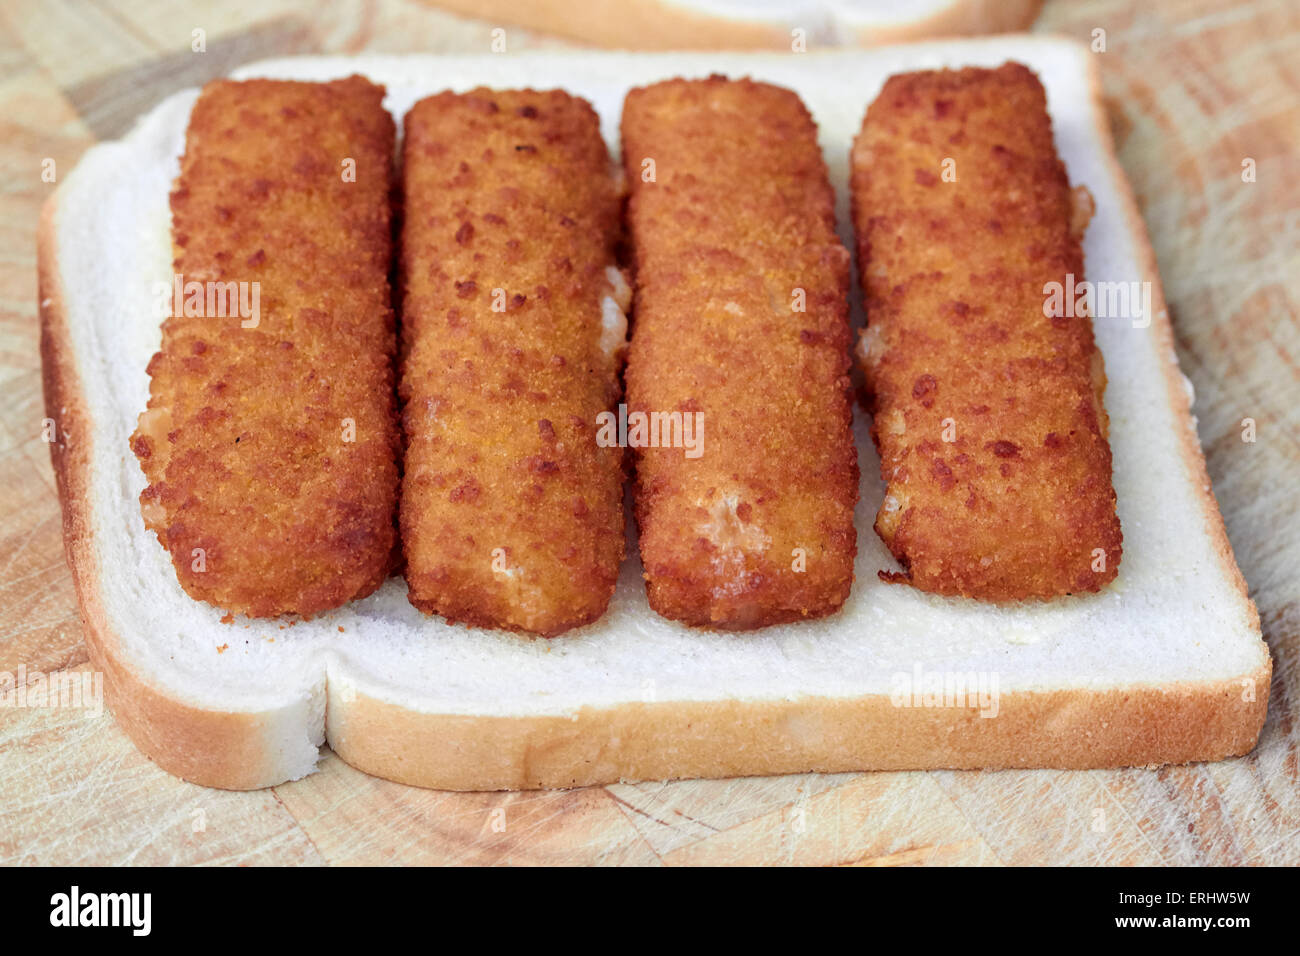 making a fish finger sandwich - Stock Image